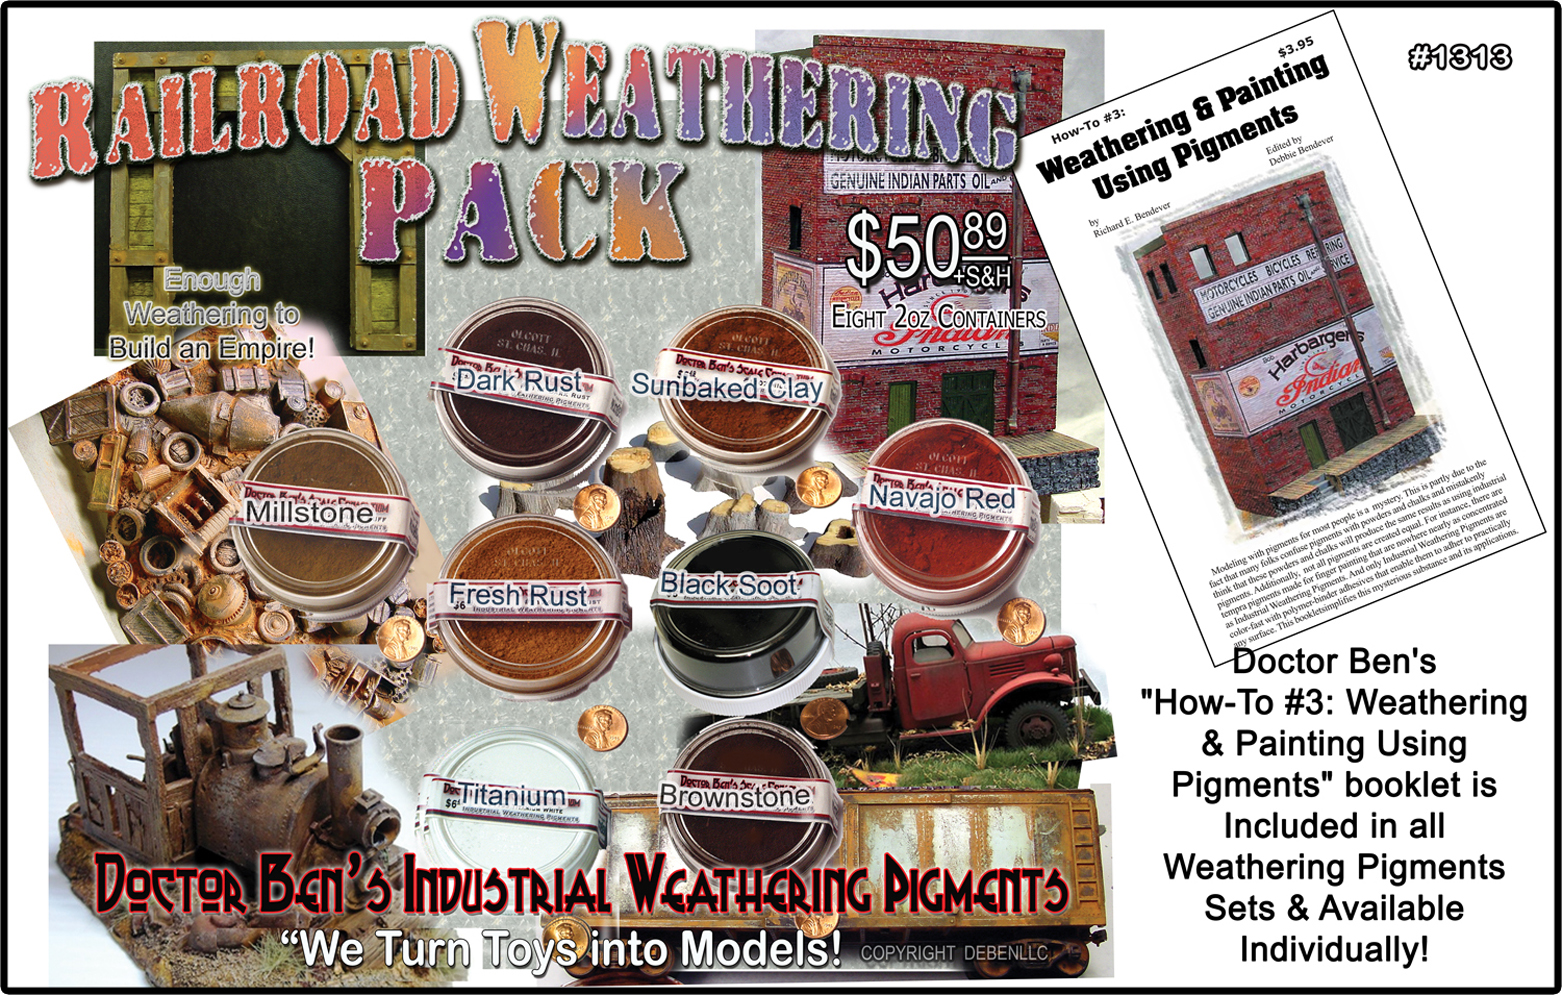 8-Color Railroad Weathering Pigment Set  & Booklet #3-Doctor Ben's